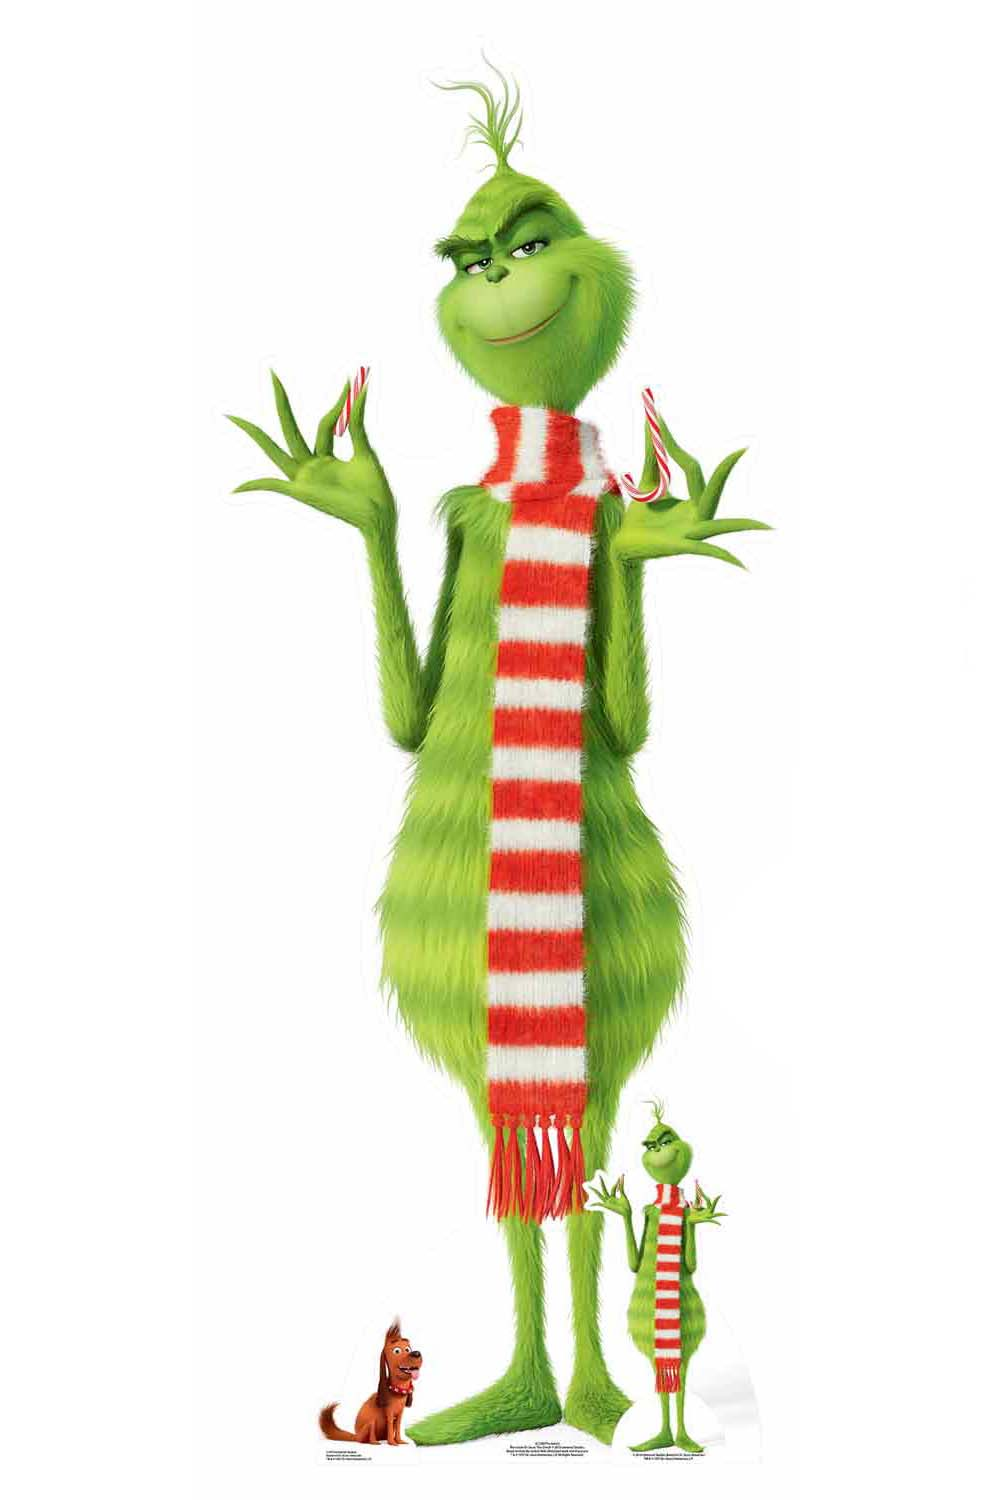 The Grinch Lifesize Cardboard Cutout Standup Standee